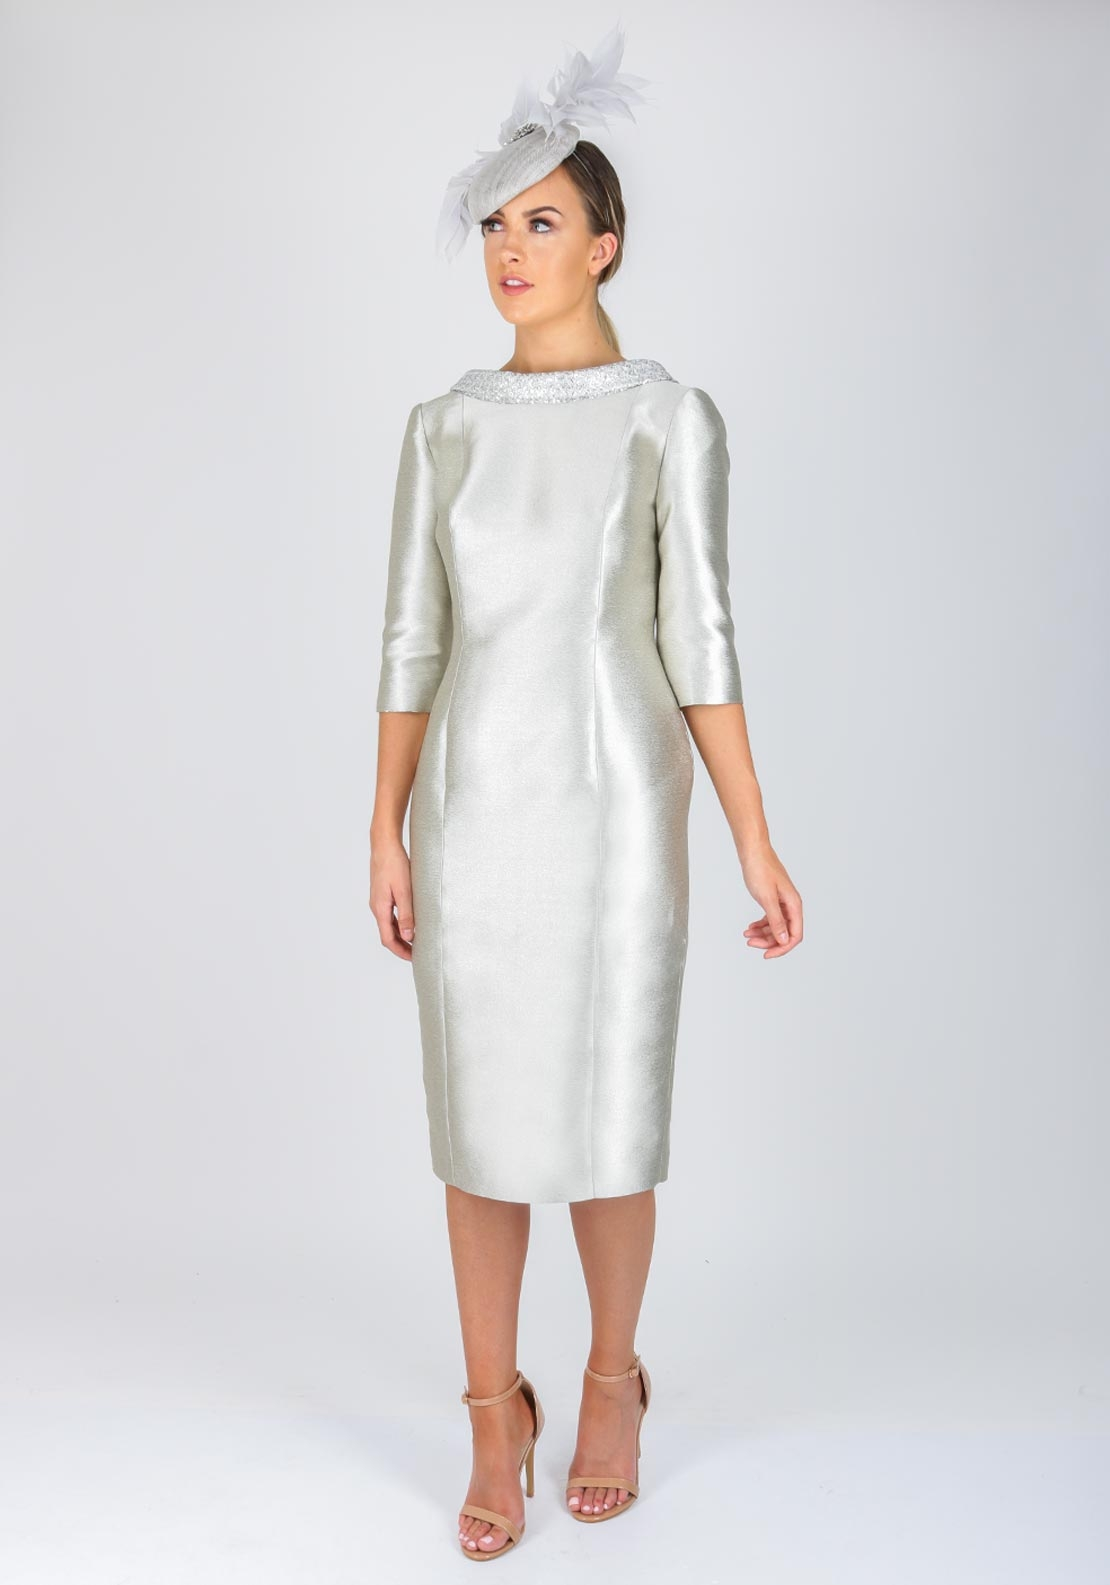 Fely Campo Embellished Collar Pencil Dress, Silver